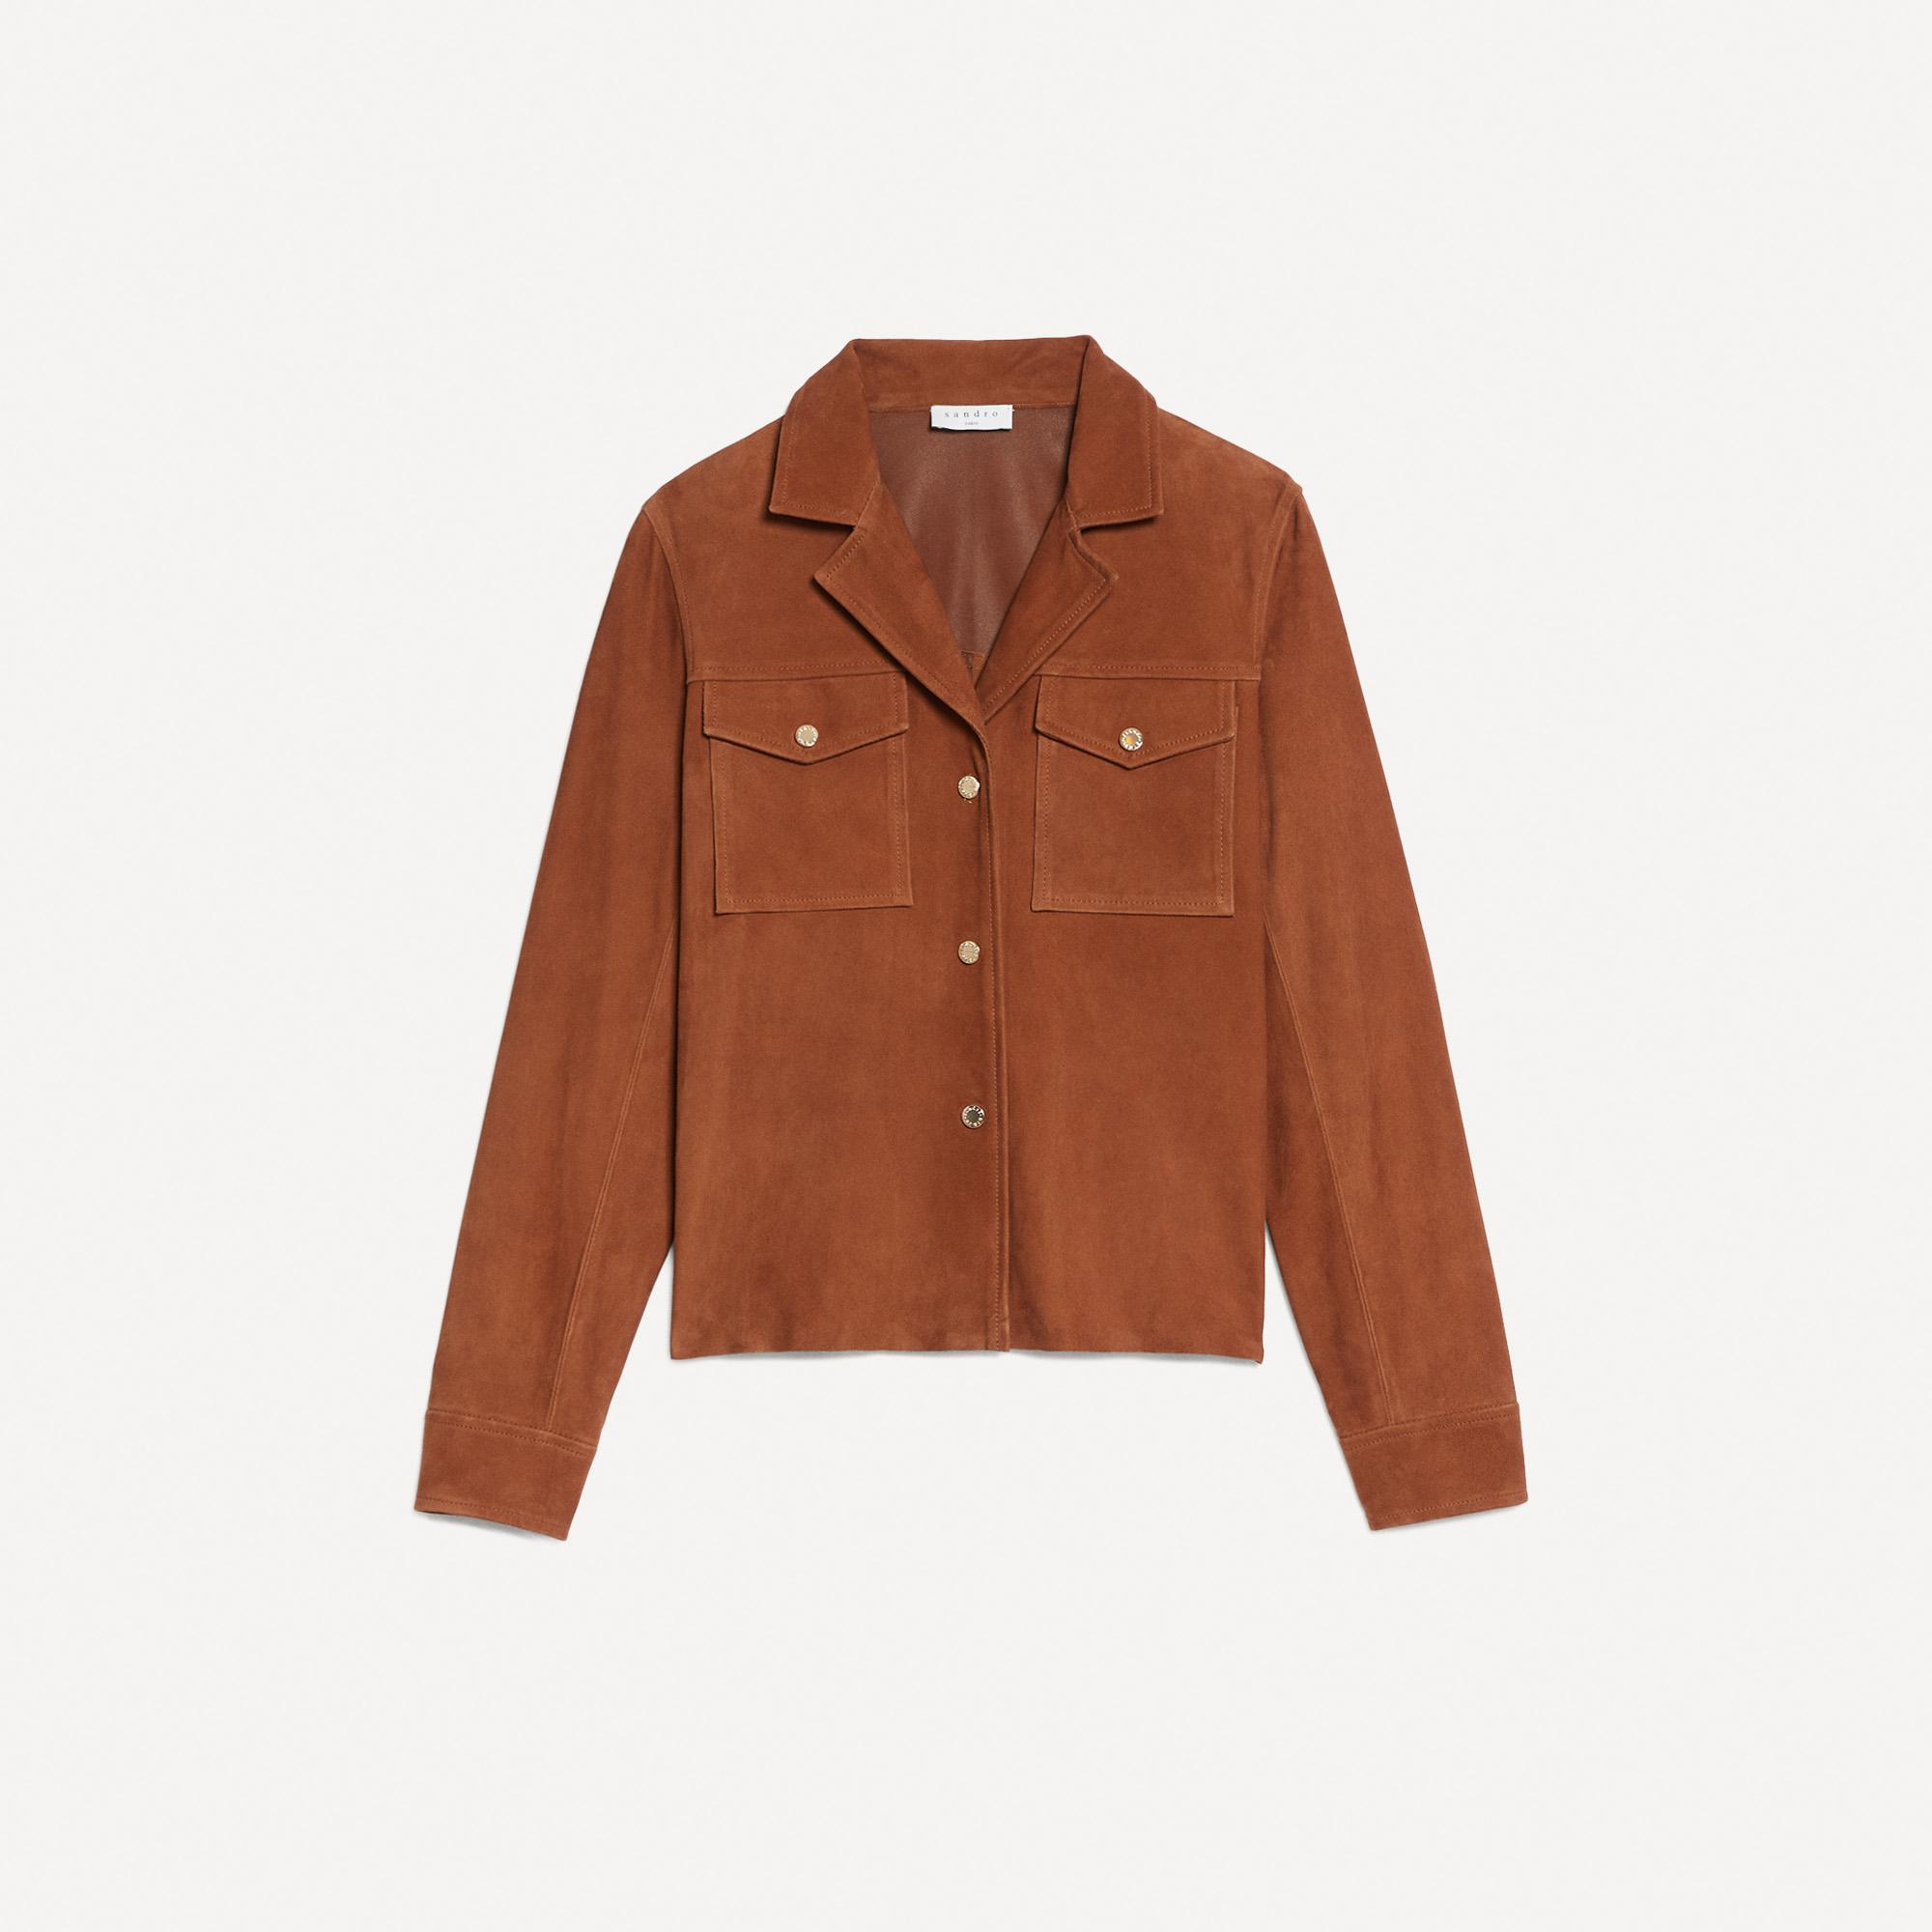 Suede jacket with gold-tone press studs